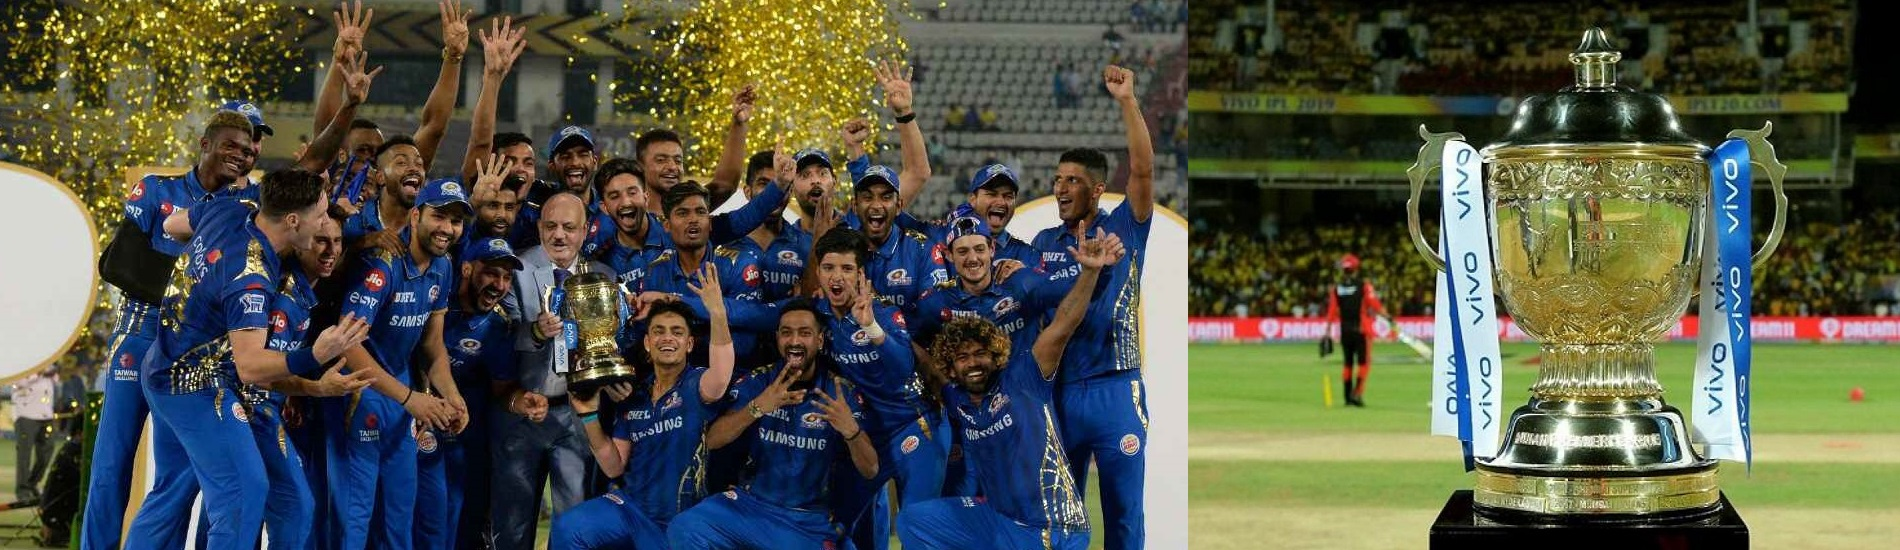 Indian Premier League Final Tickets